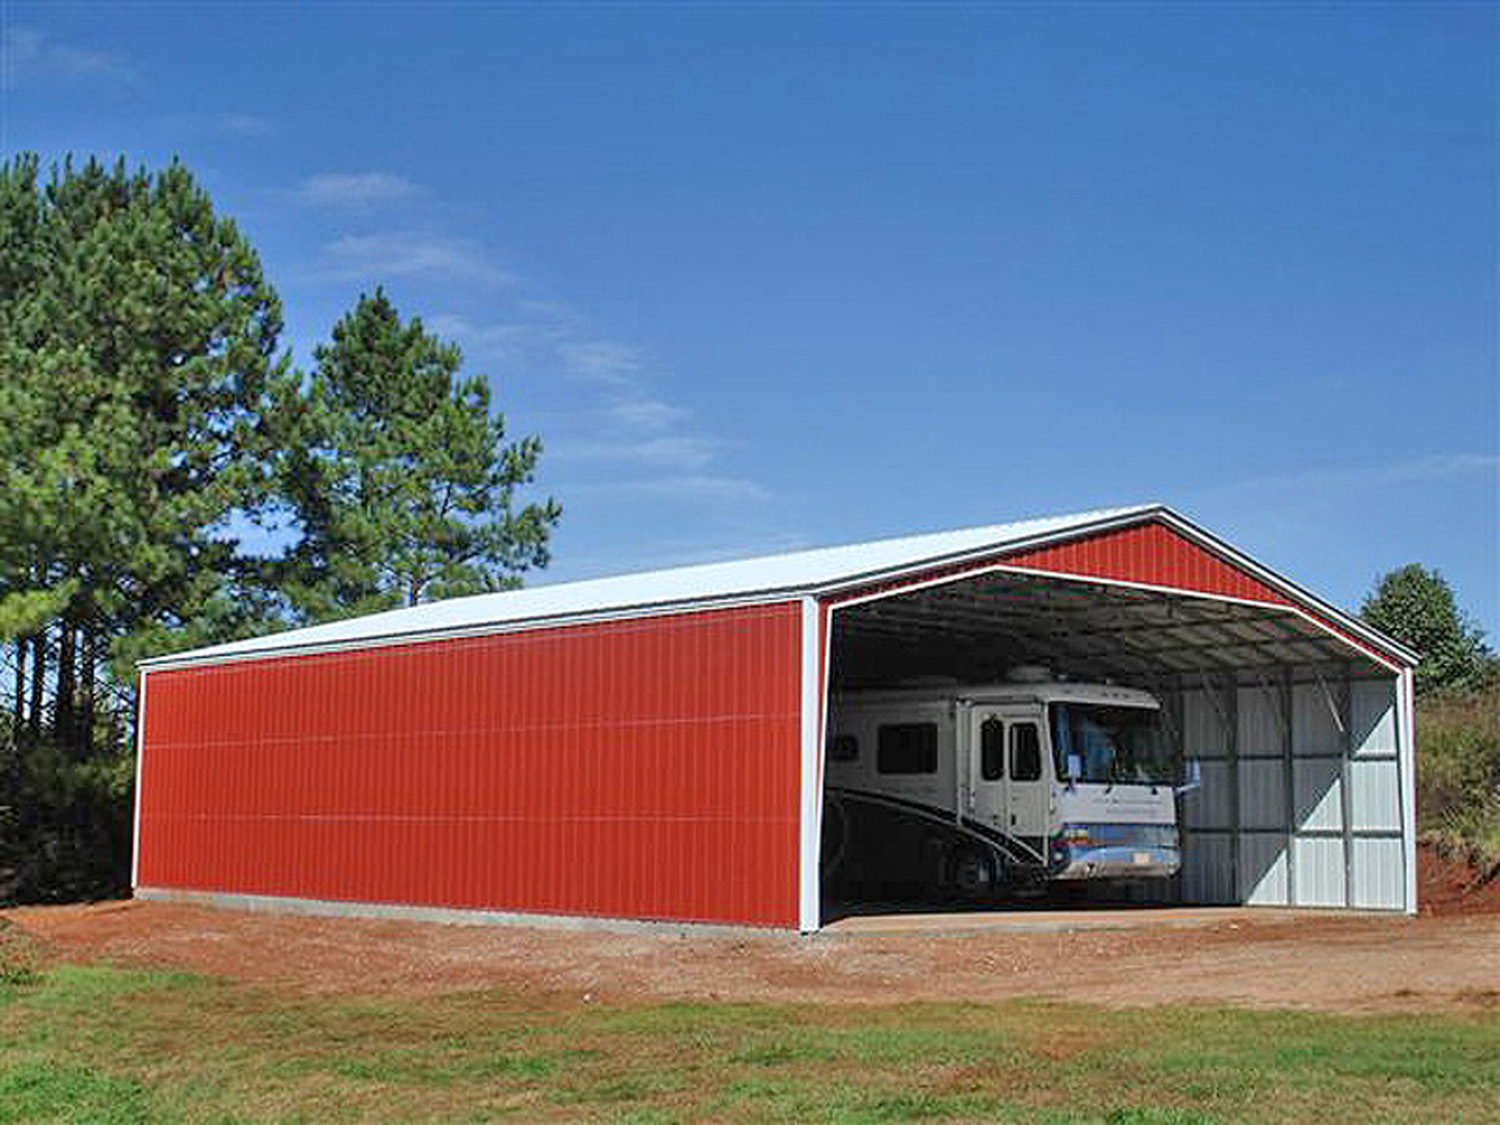 Rv storage buildings metal rv shelters rv carports Rv buildings garages